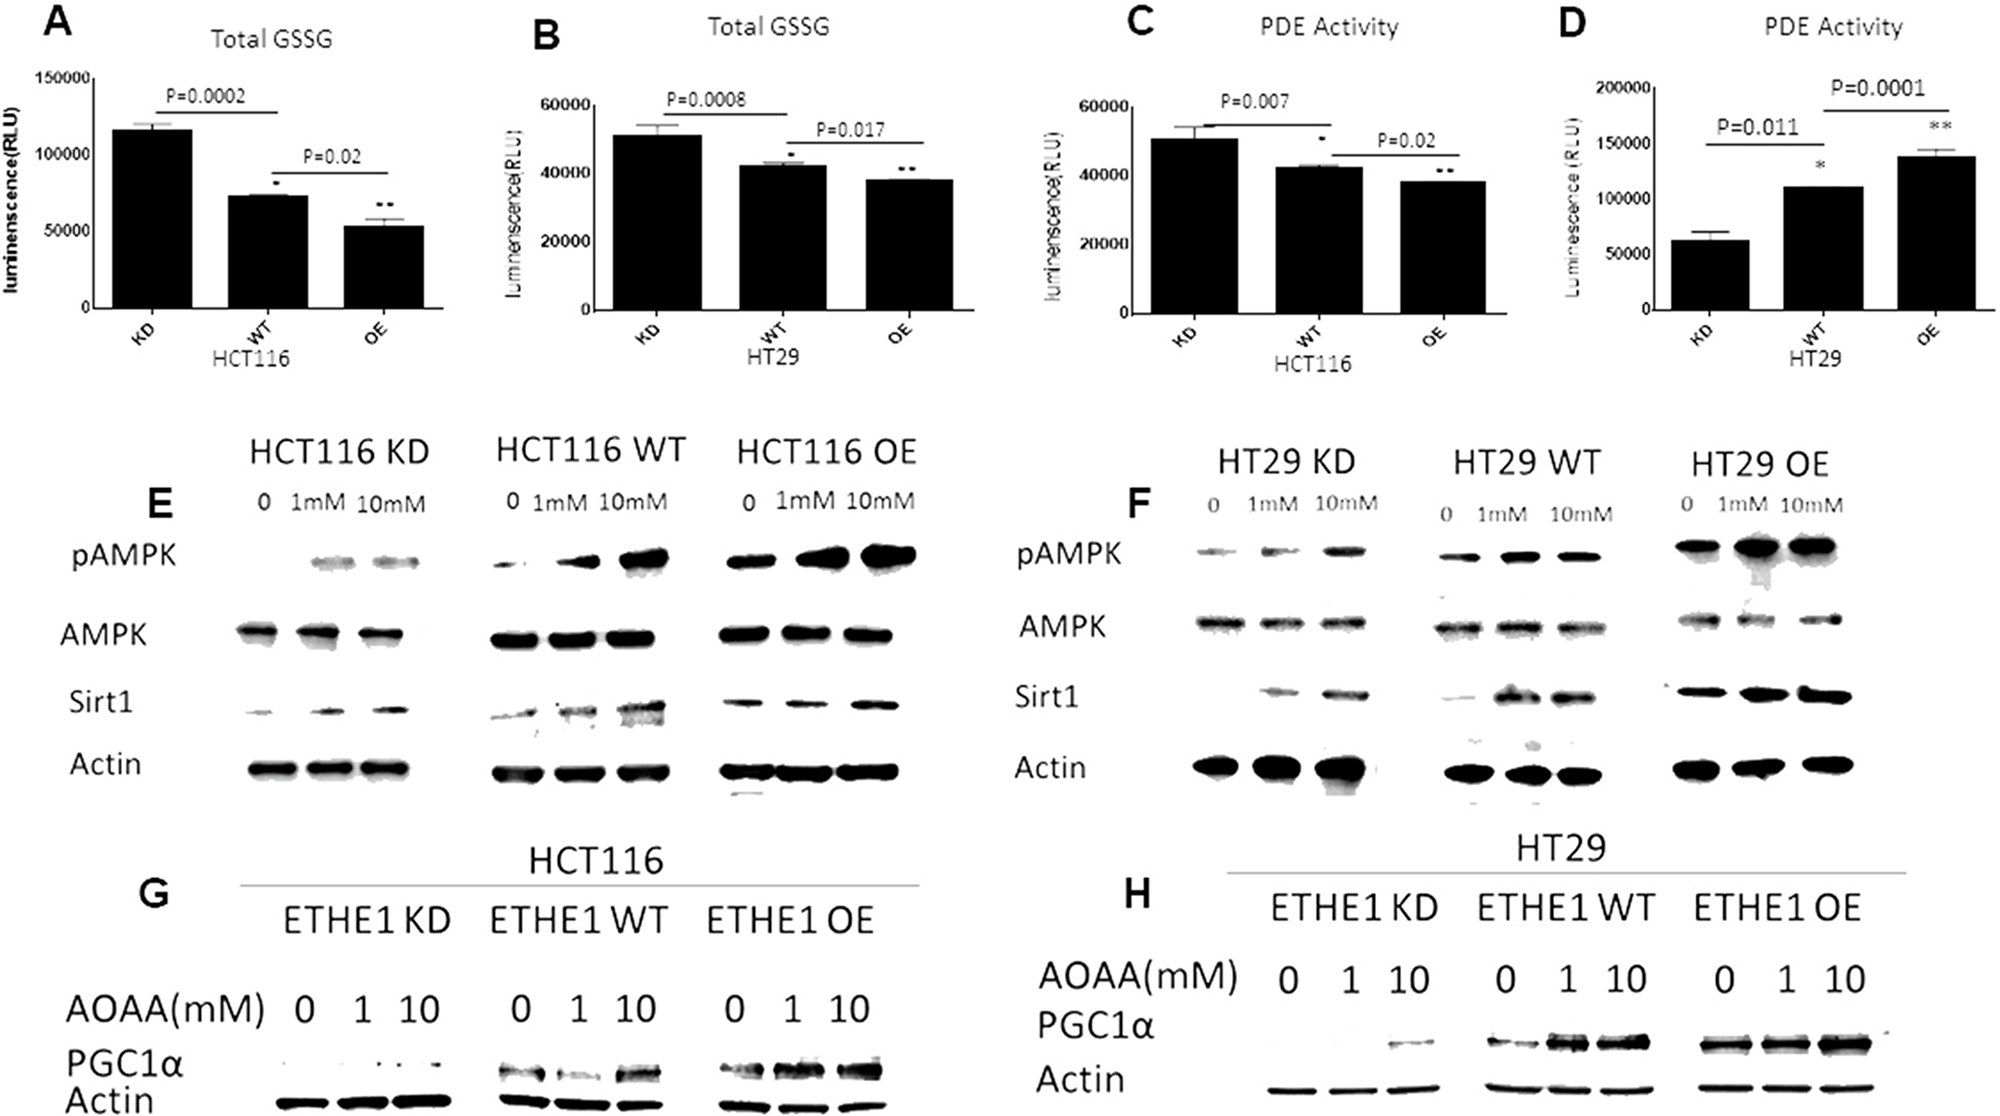 ETHE1 levels drive PDE mediated stimulation of pAMPK/Sirt1.